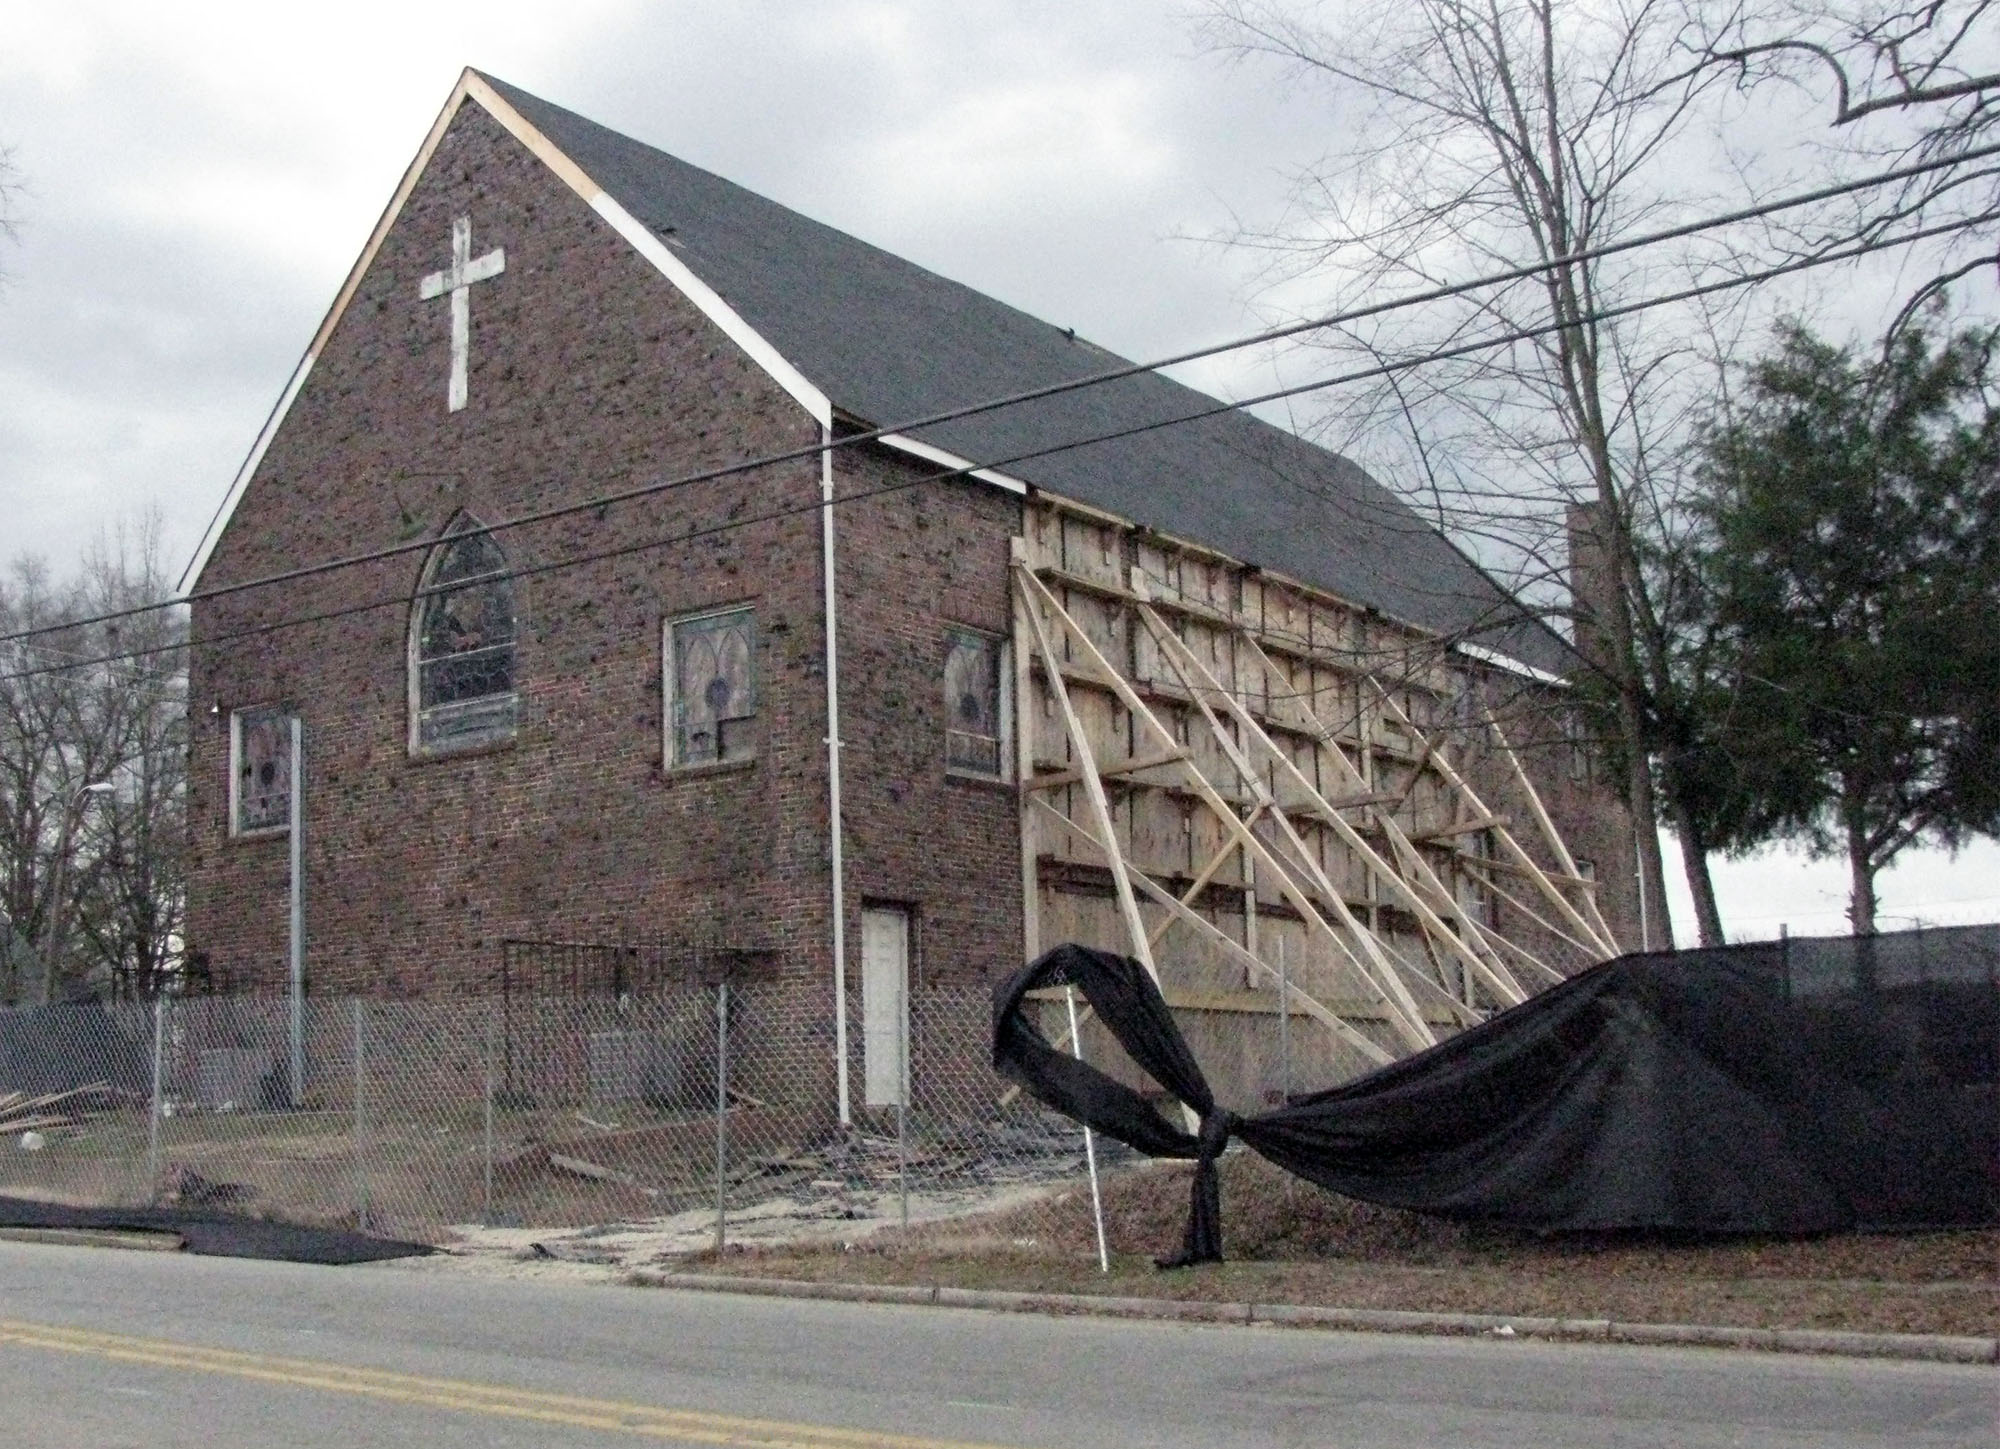 The church has focused primarily on imminent structural concerns regarding the building. Currently, wooden beams support one external wall, and the building's doors are boarded up. (Staff photo by Catherine O'Neill)